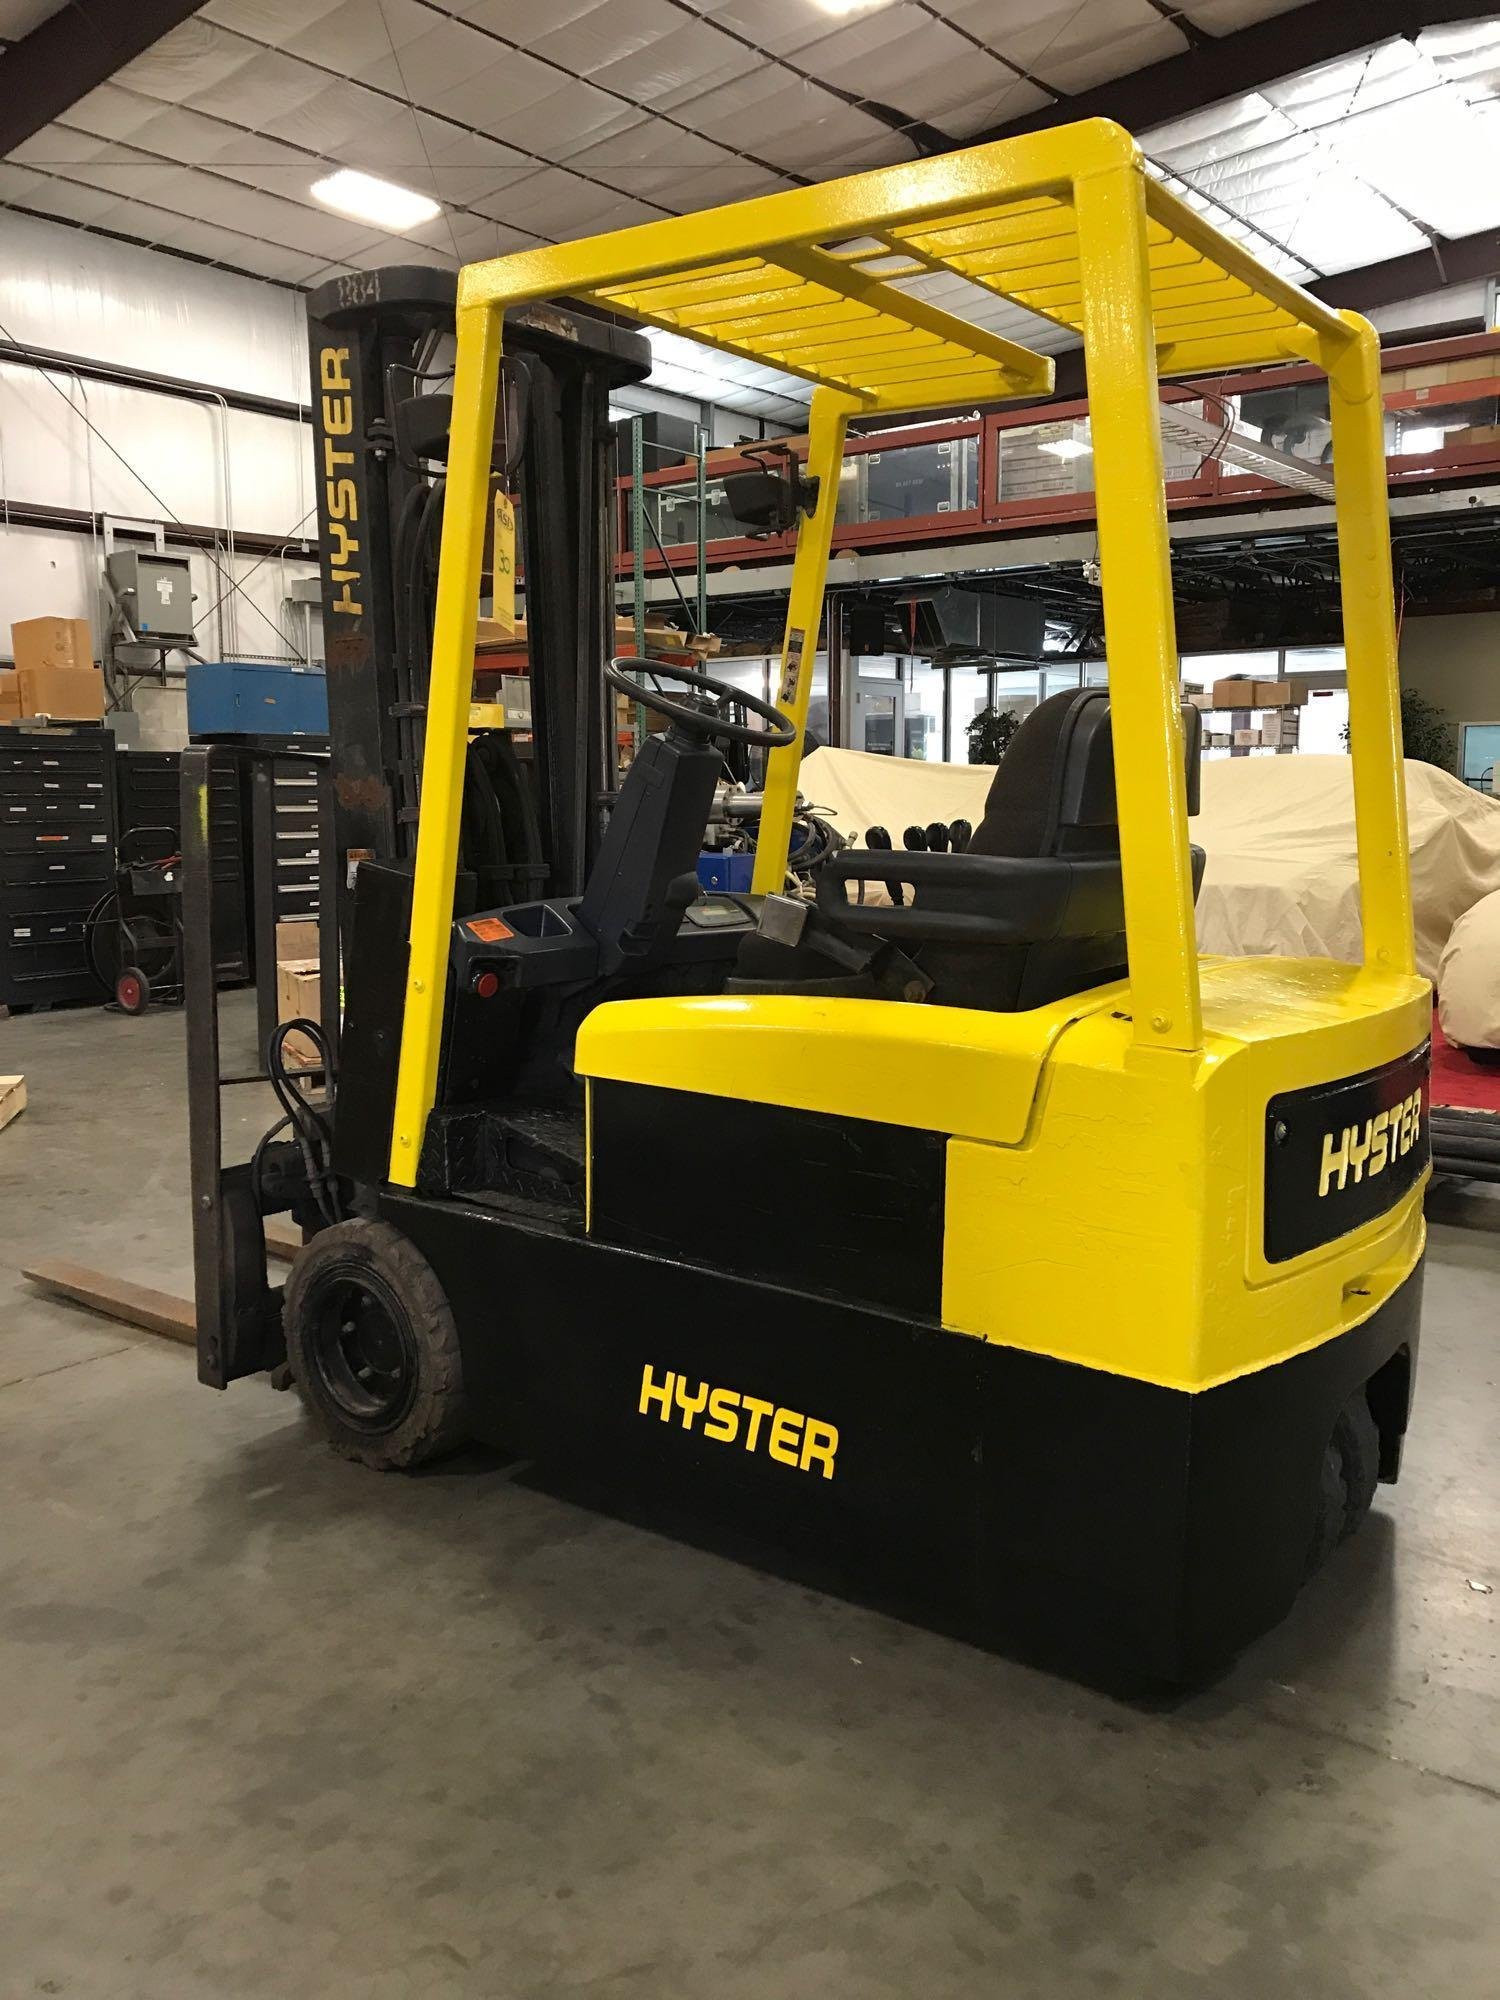 Lot 30 - HYSTER J40XMT ELECTRIC FORKLIFT, 4,000 LB LIFT CAPACITY